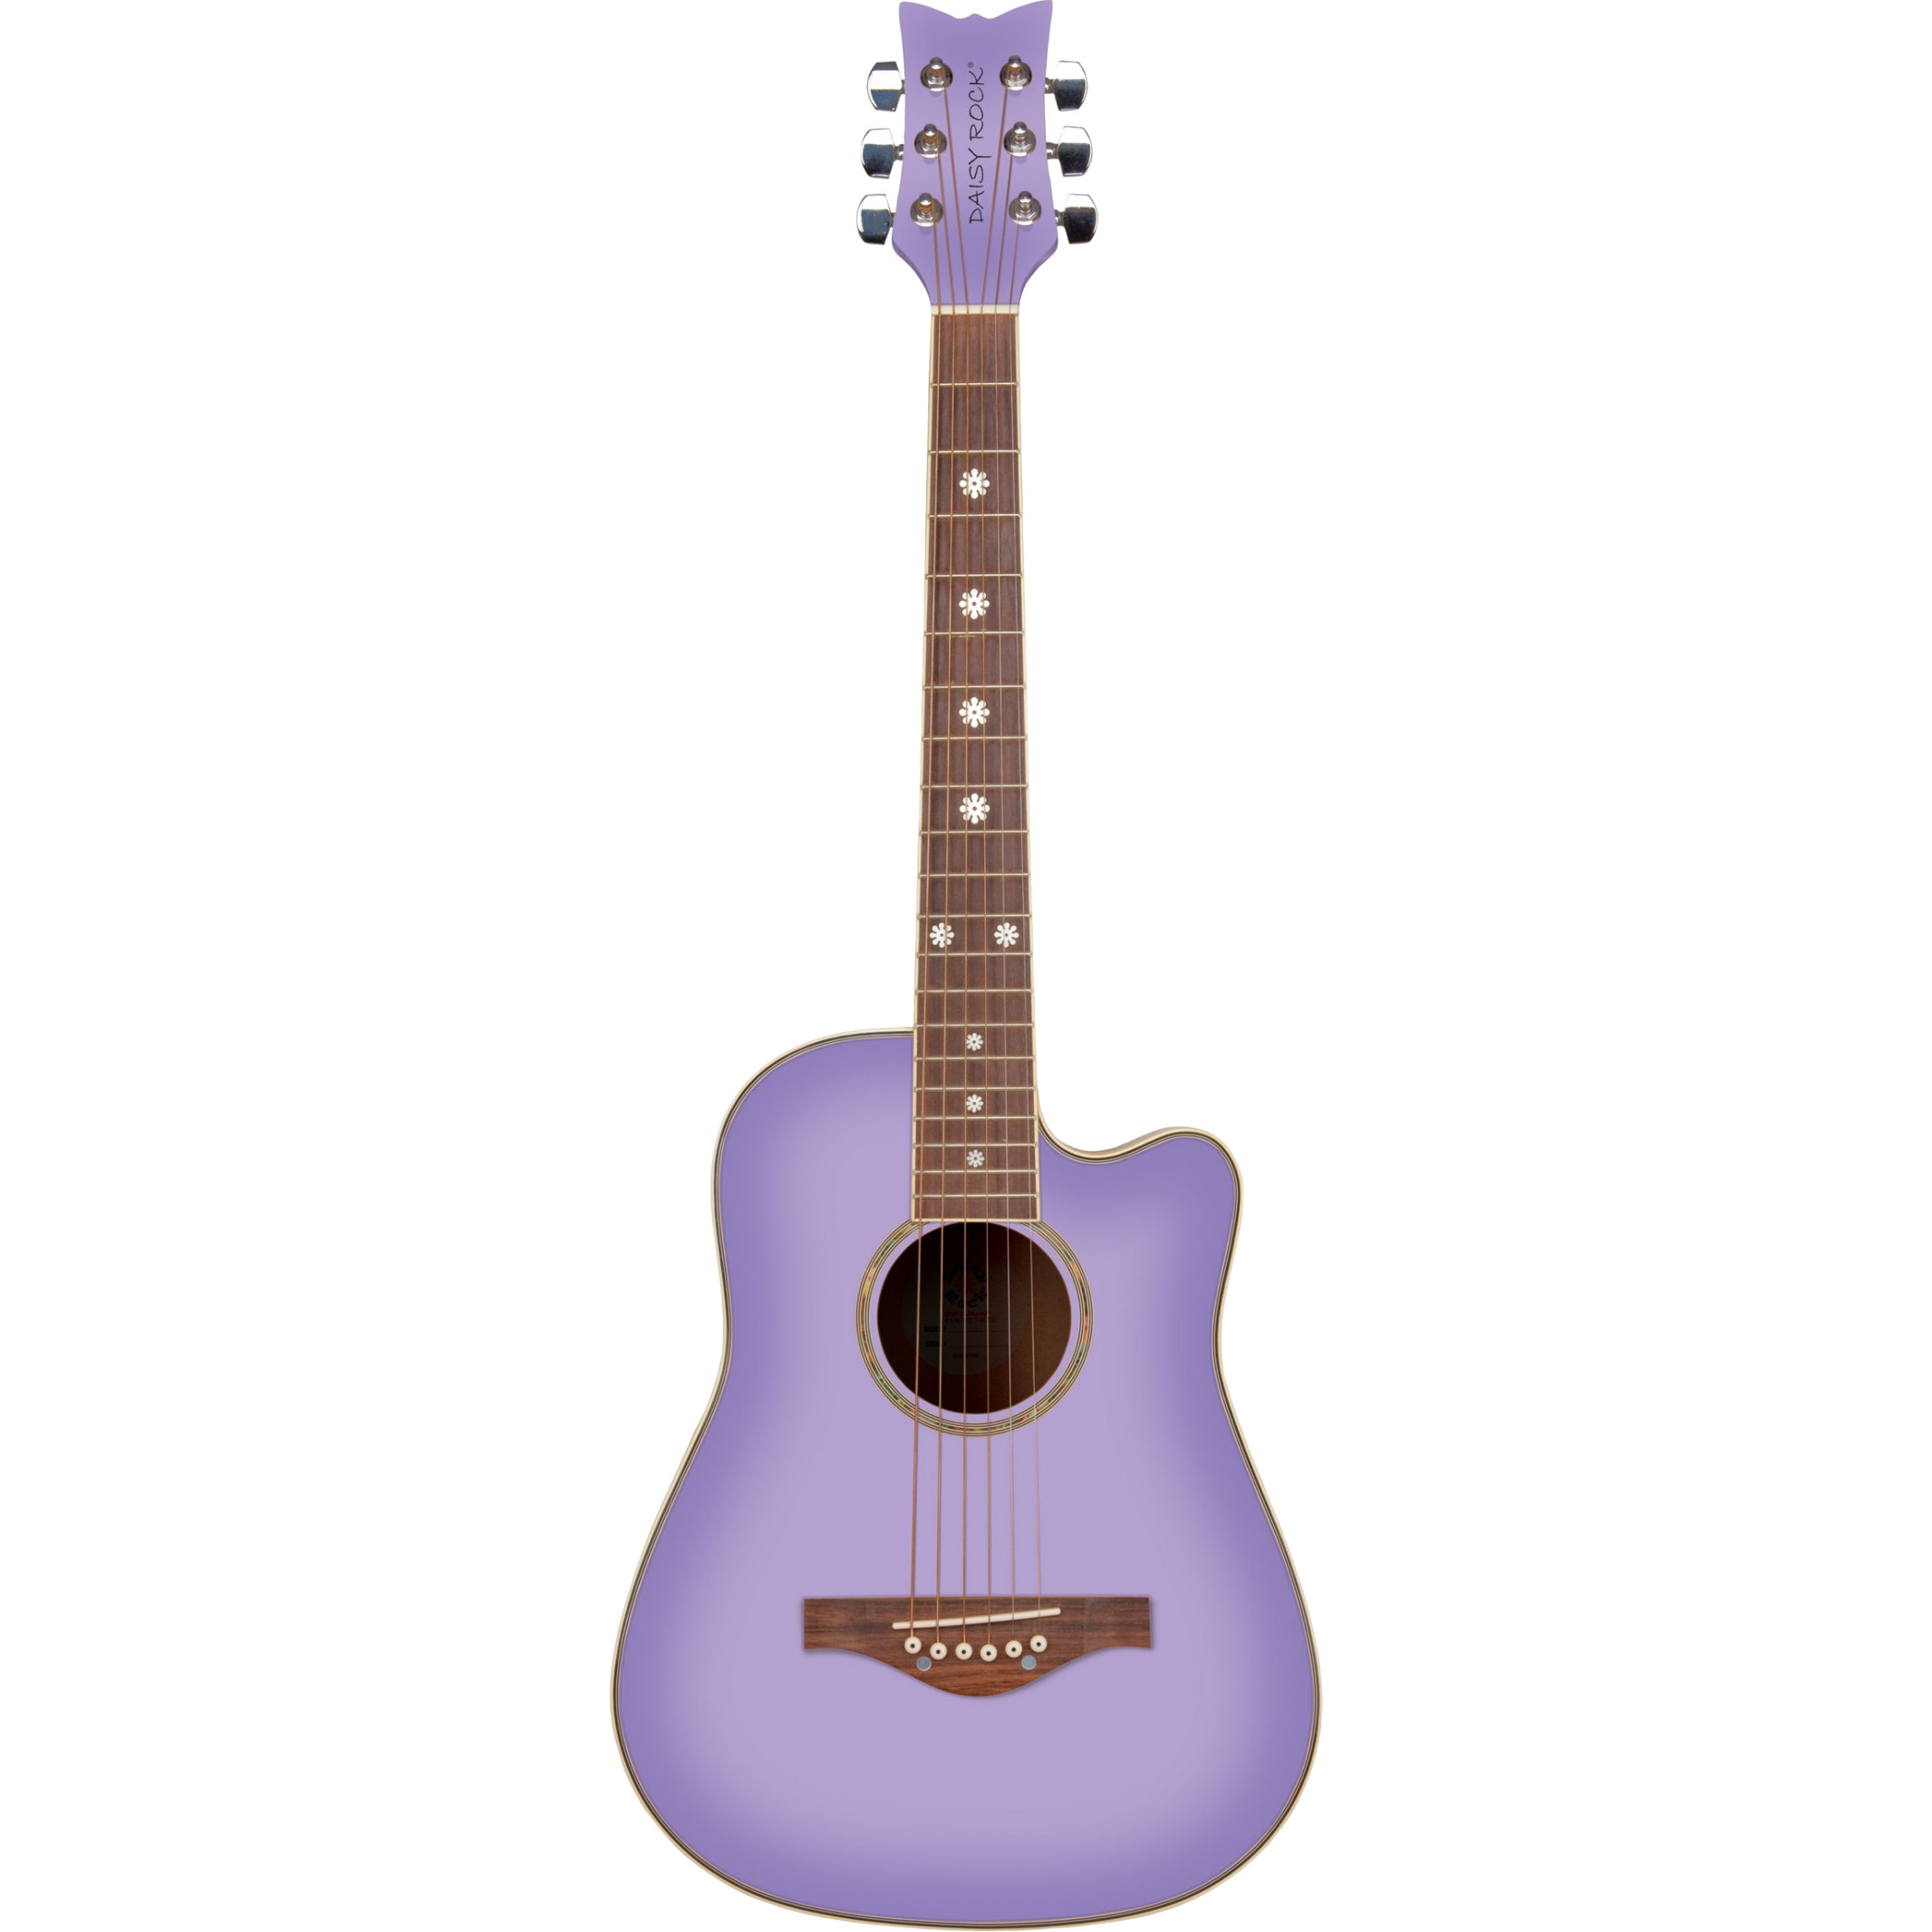 Daisy Rock Wildwood Acoustic 3 4 acoustic guitar, Purple Daze